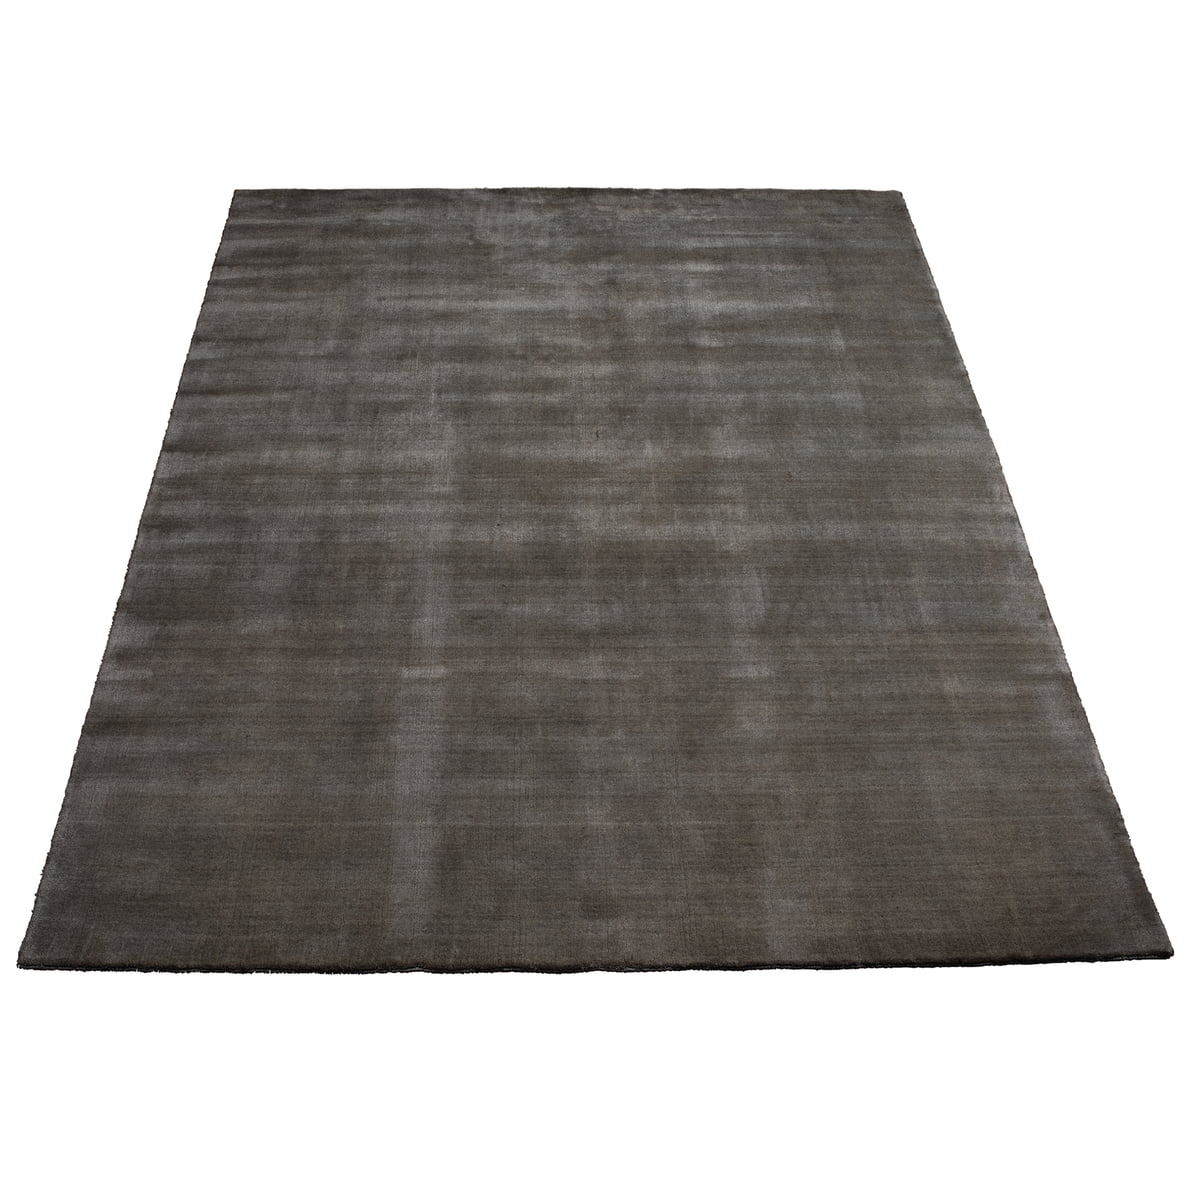 Teppich Kaufen 300 Massimo Earth Bamboo Teppich 200 X 300 Cm Charcoal